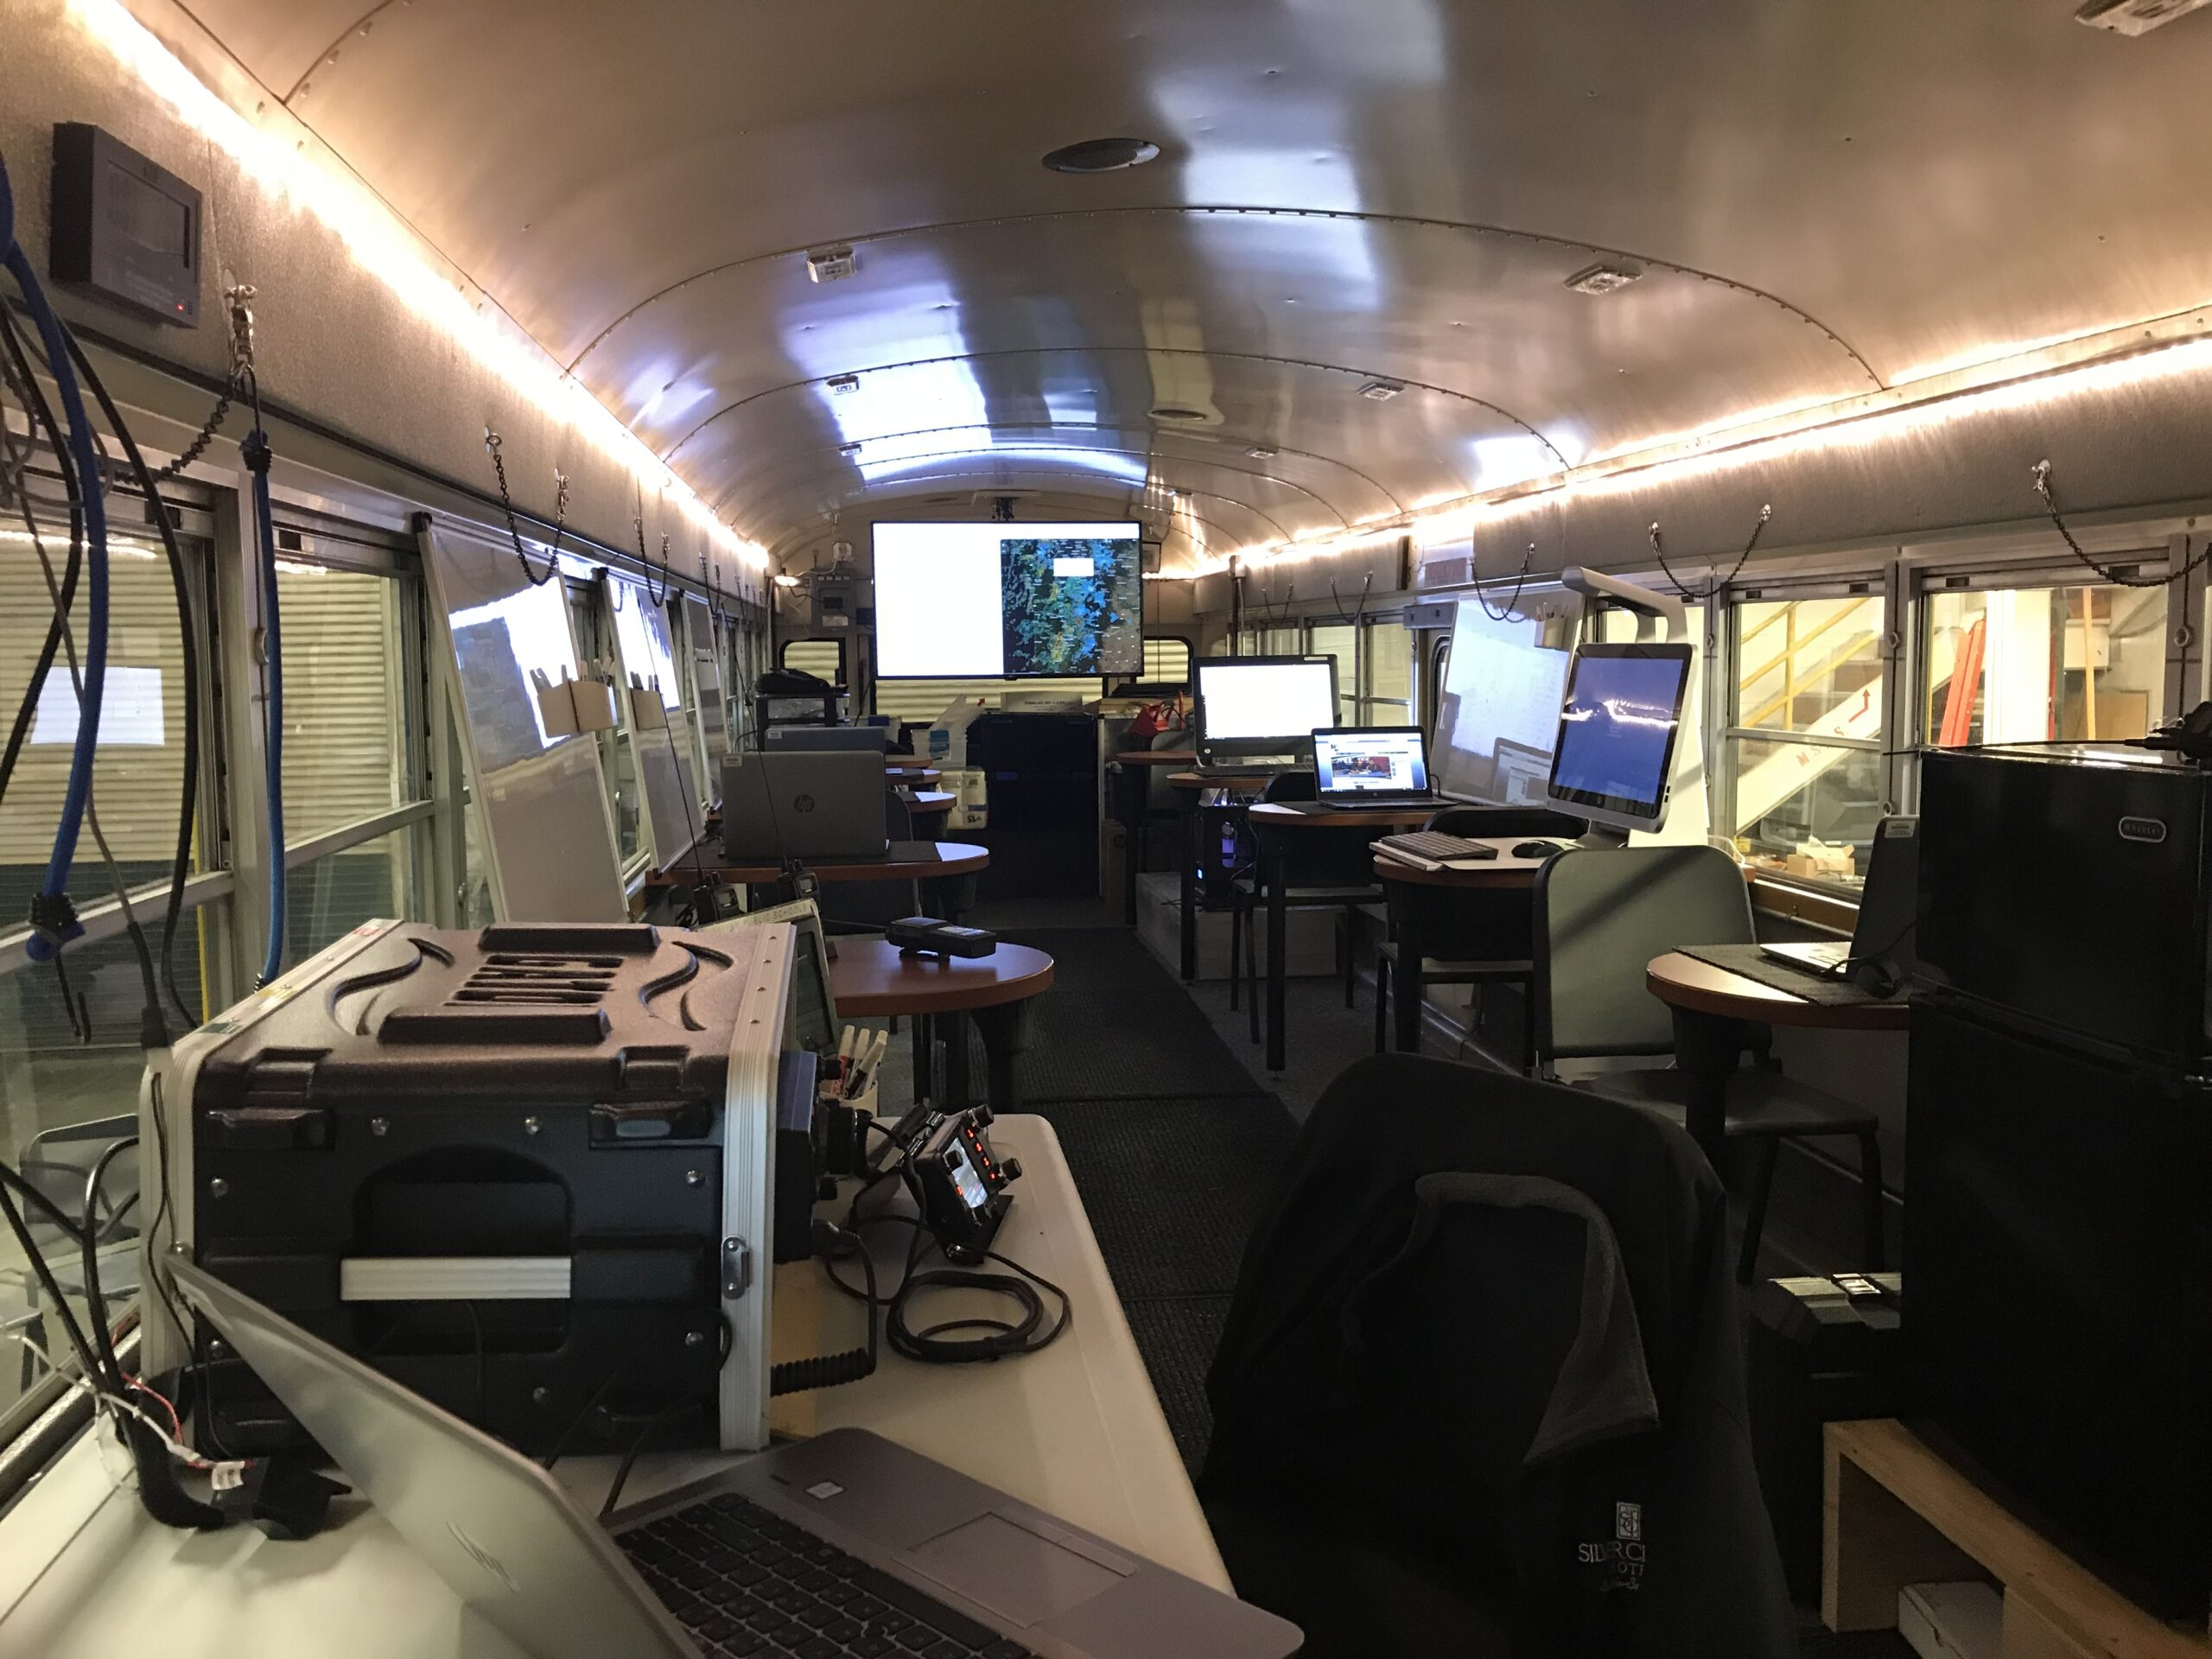 When used in an emergency, there is space for 12 to work inside the bus. As a mobile STEAM lab, there's room for 15 kids to learn.